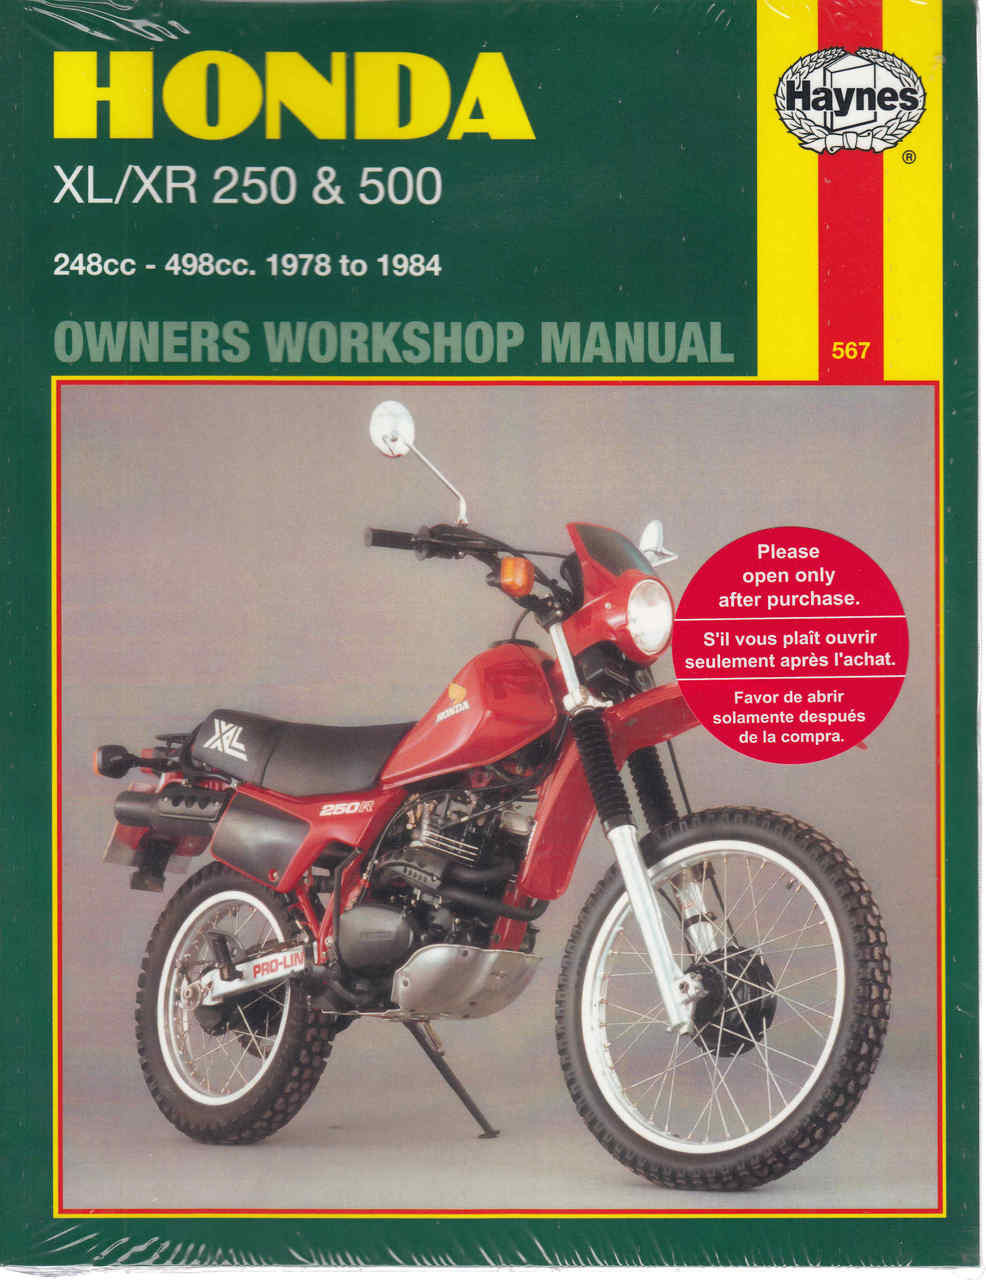 honda xl xr 250 500 1978 1984 workshop manual automoto bookshop rh automotobookshop com au 1984 Honda XL250 Honda XL500